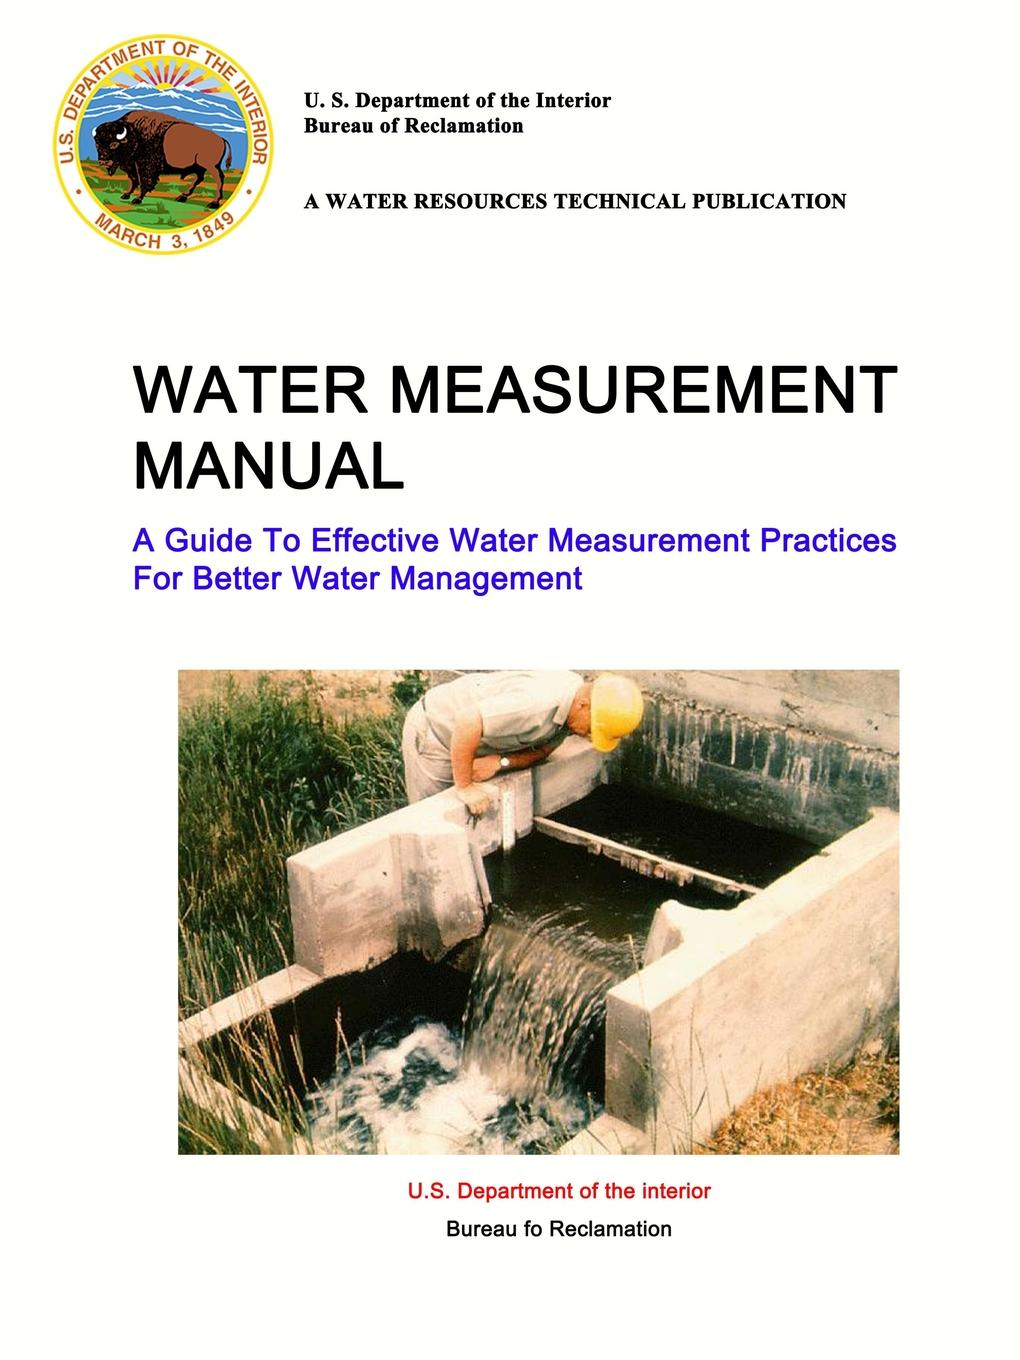 U. S. Department of the Interior, Bureau of Reclamation Water Measurement Manual - A Guide To Effective Water Measurement Practices For Better Water Management voeller john g water safety and water infrastructure security